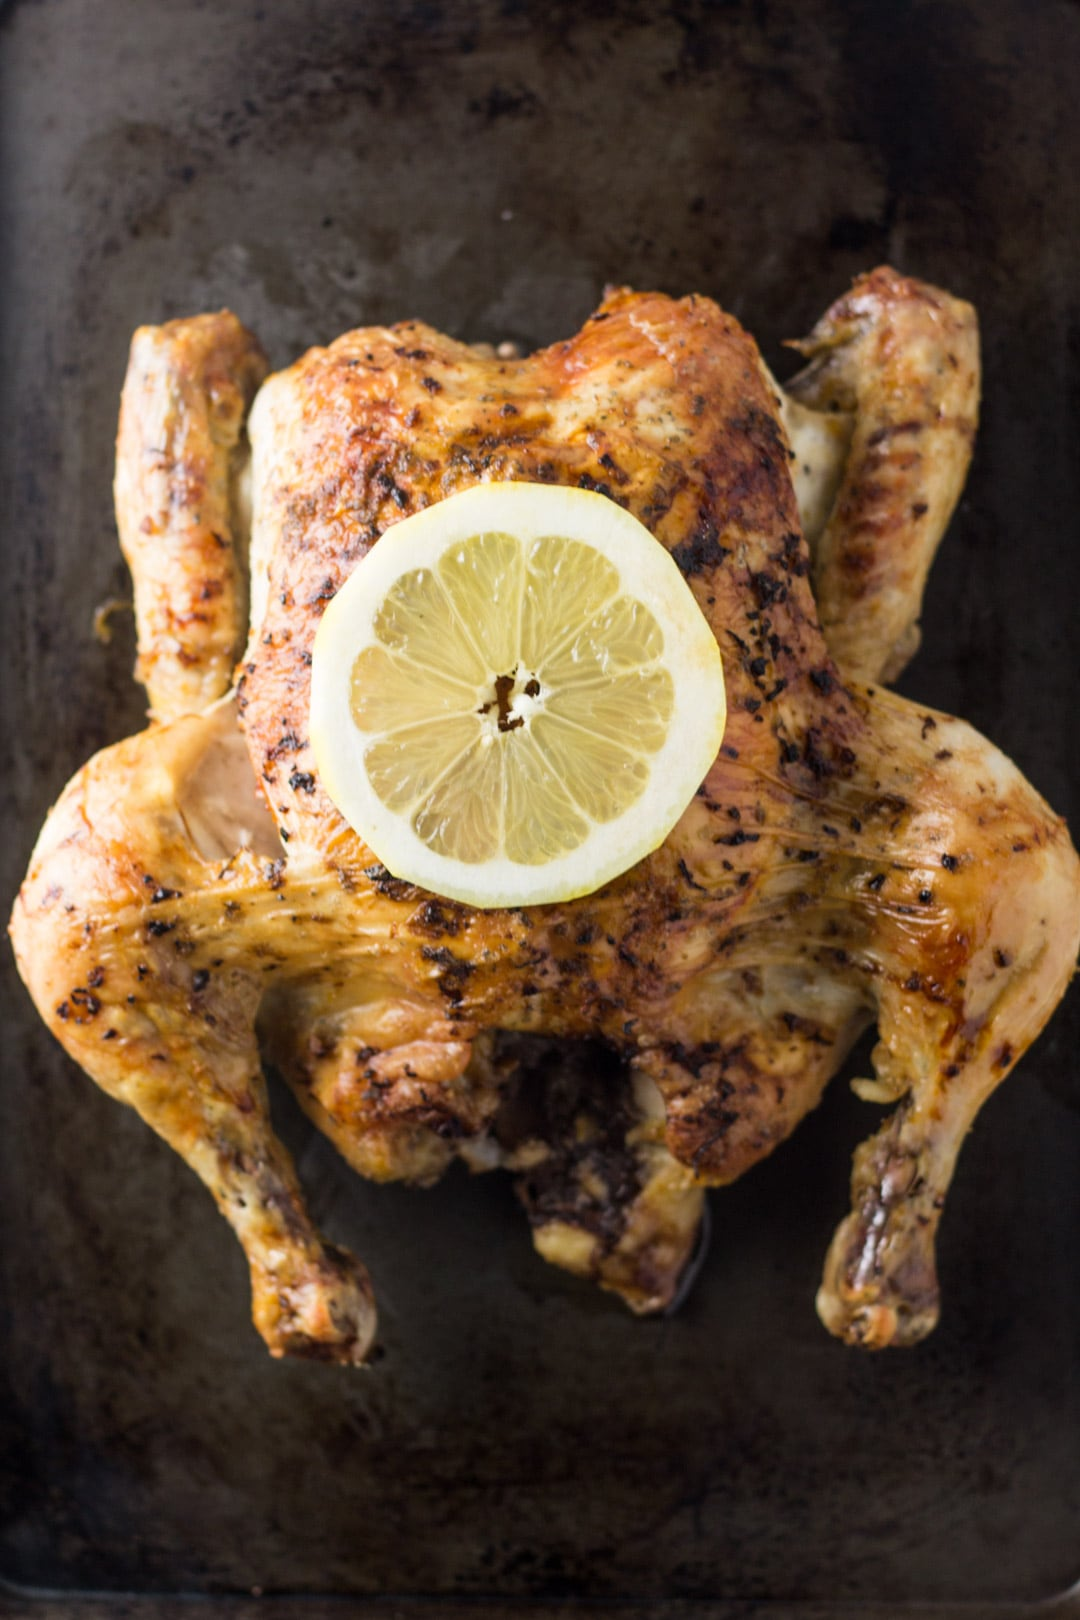 Looking down at a lemon roasted whole chicken topped with a lemon slice.